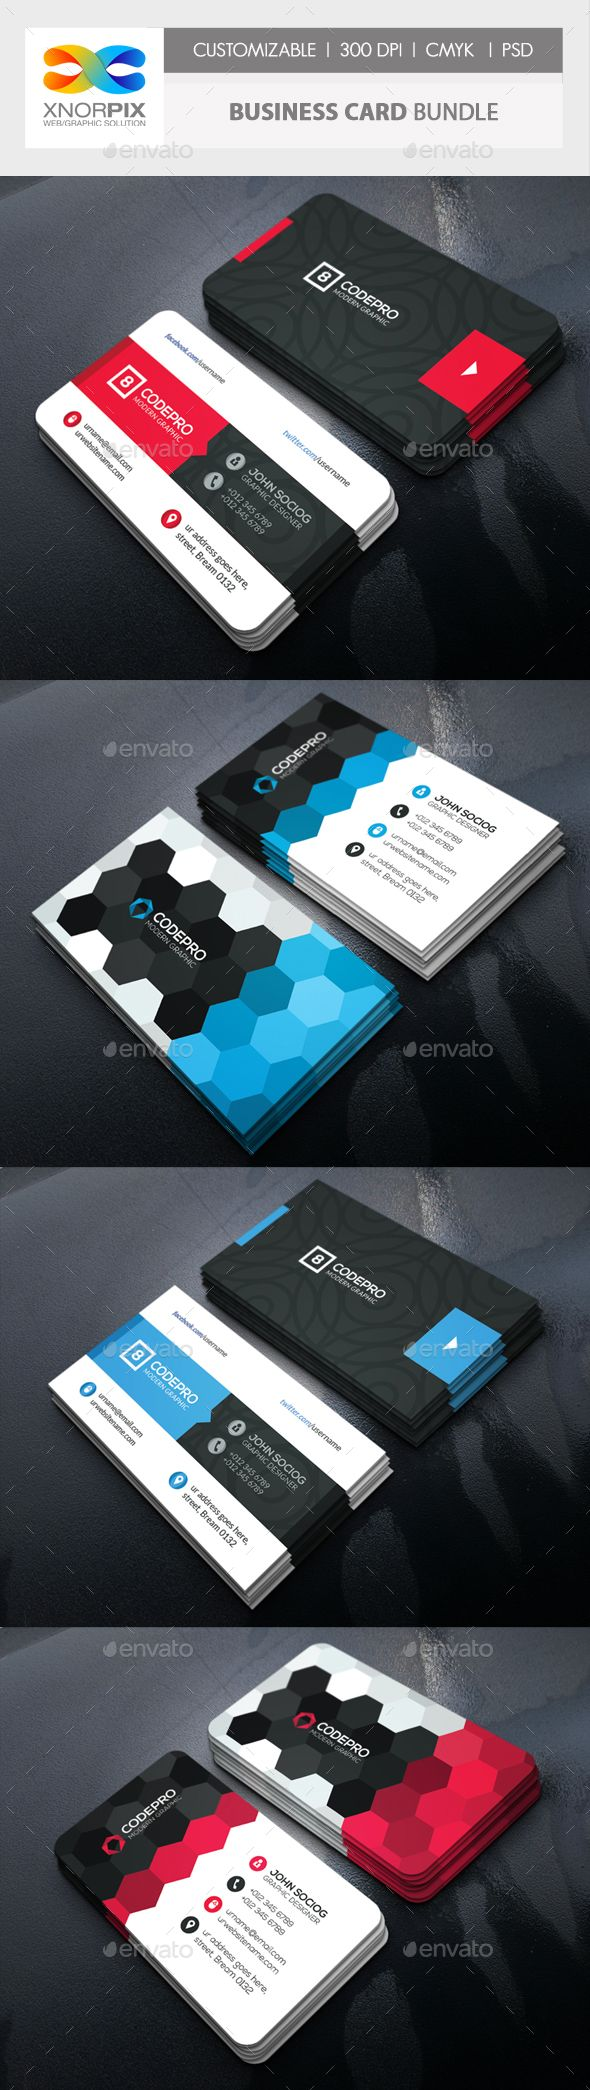 218 Best Business Card Images On Pinterest Business Cards